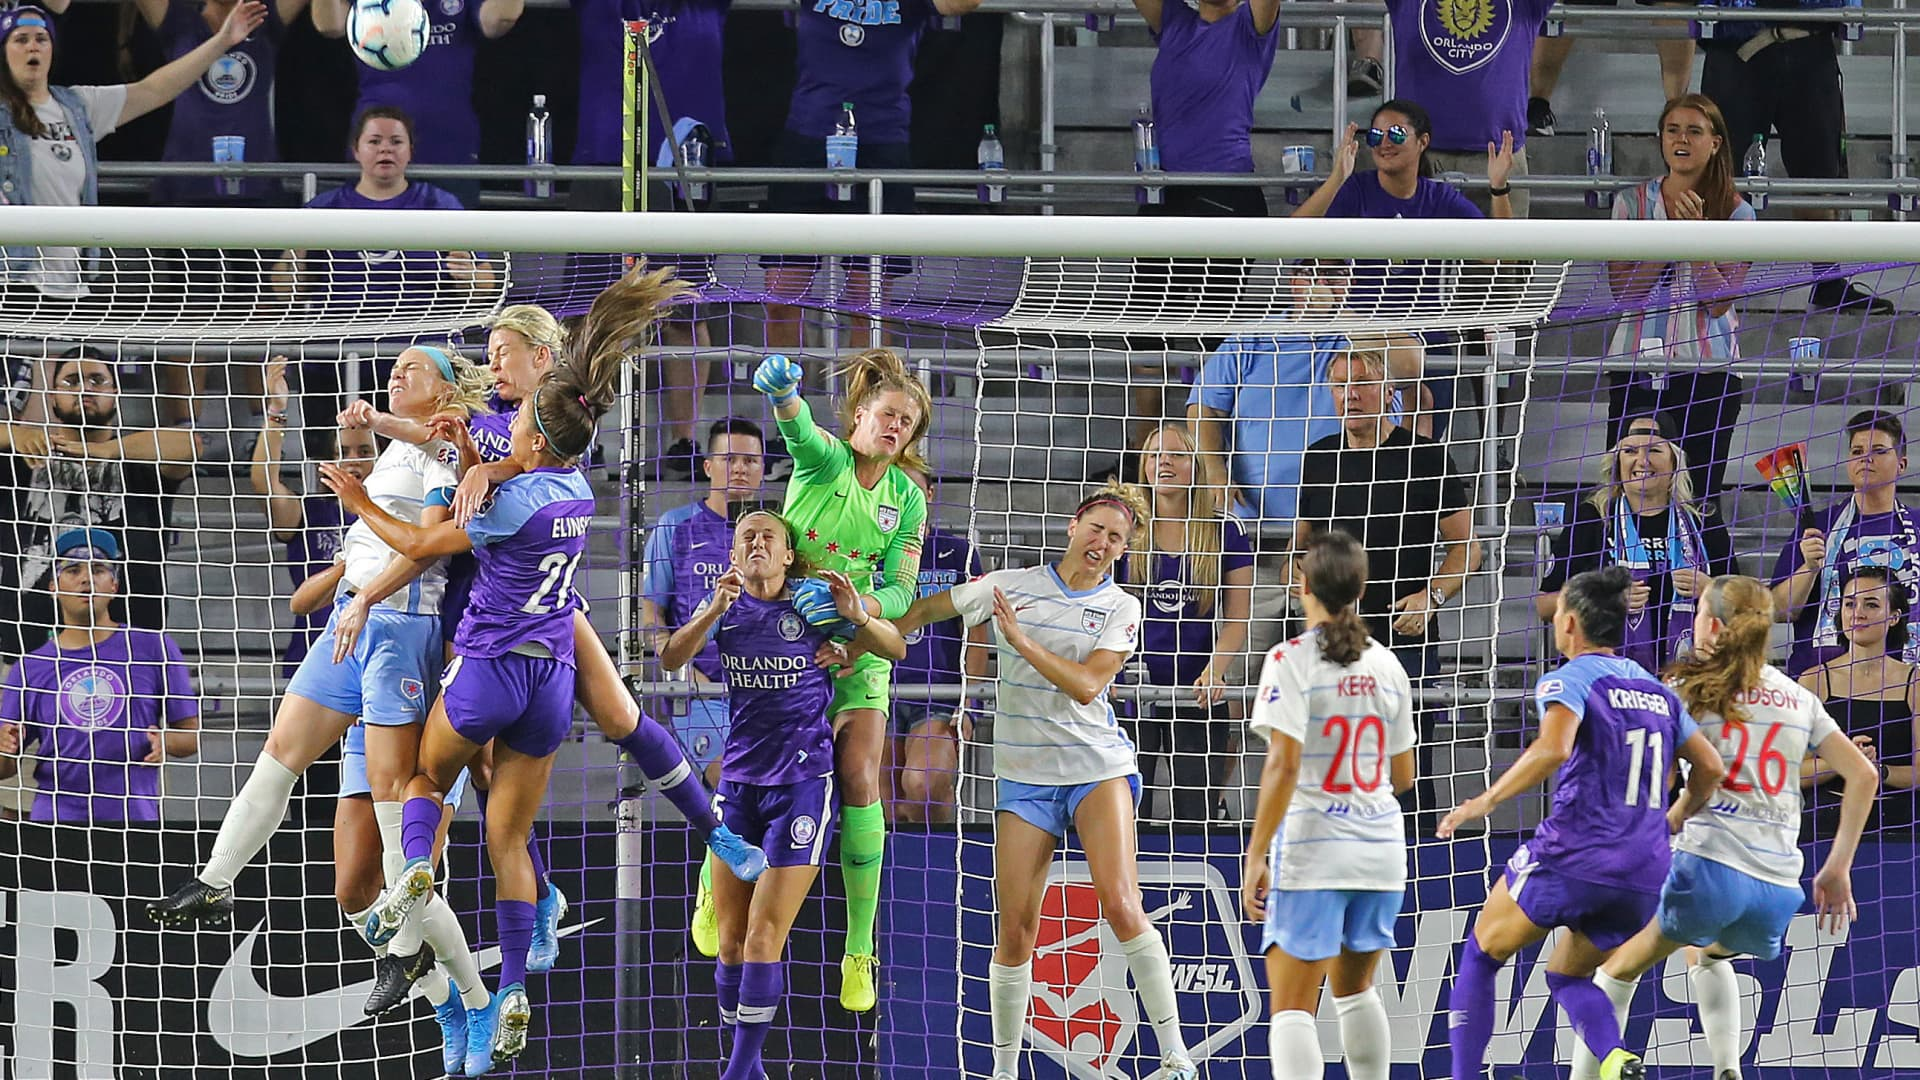 Alyssa Naeher #1 of Chicago Red Stars punches away a loose ball during a NWSL soccer match between the Chicago Red Stars and the Orlando Pride at Orlando City Stadium on September 11, 2019 in Orlando, Florida.